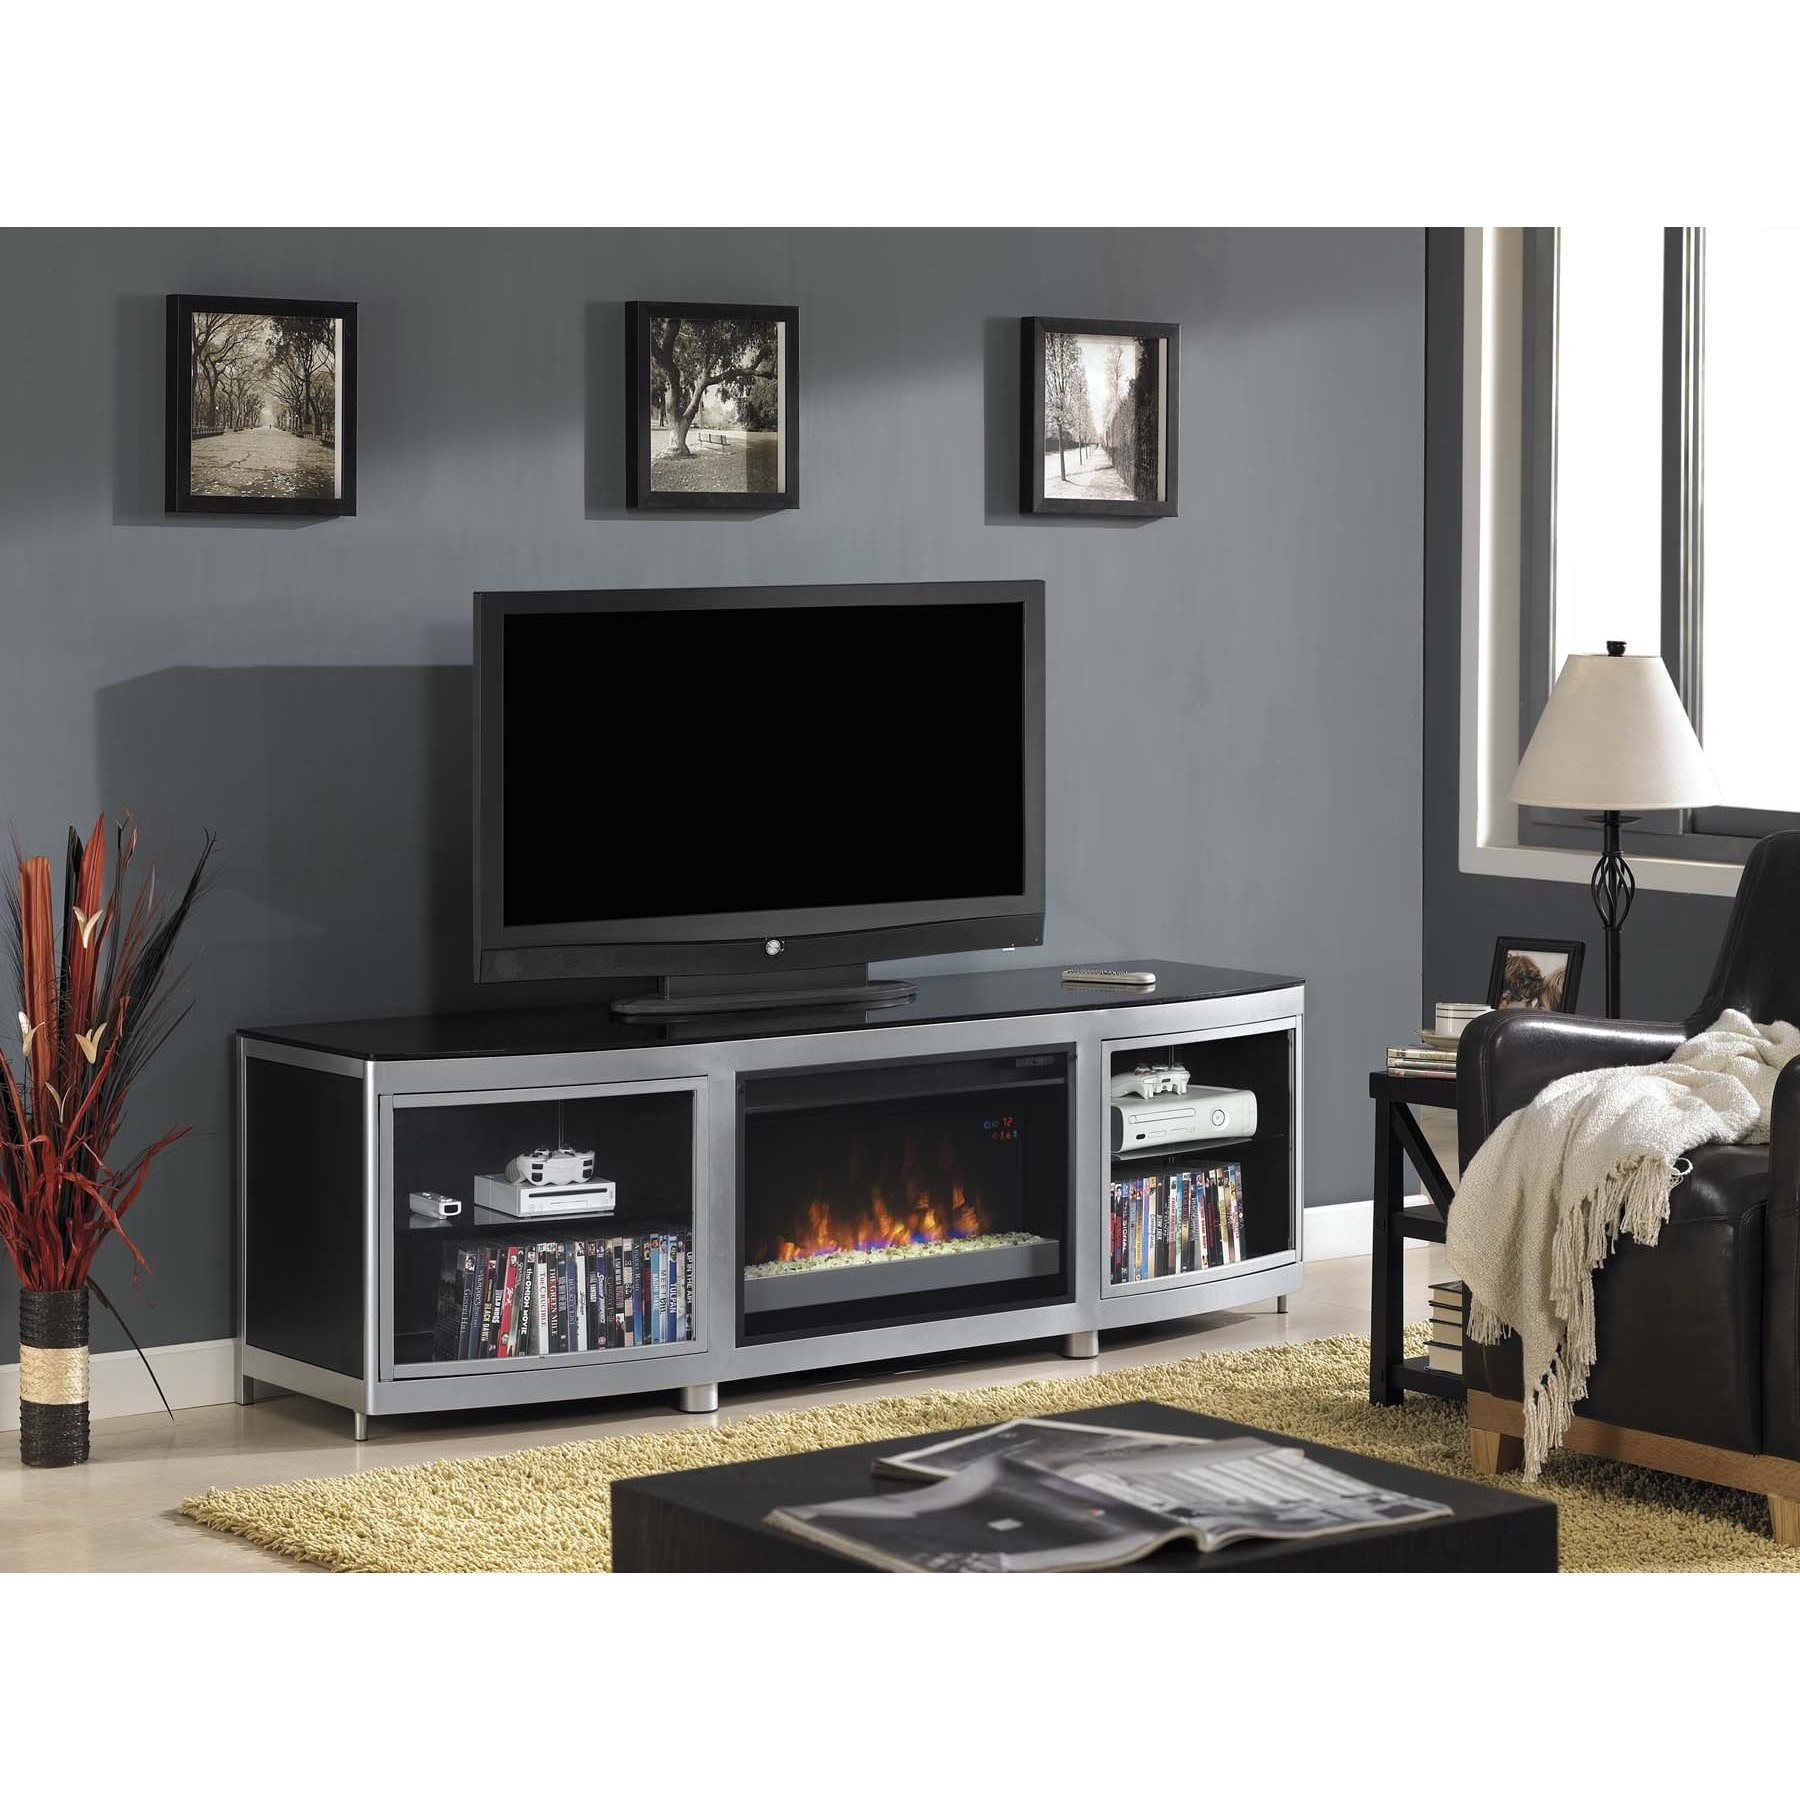 Twin Star Int Gotham Tv Stand For Tvs Up To 80 Inch With 26 Inch